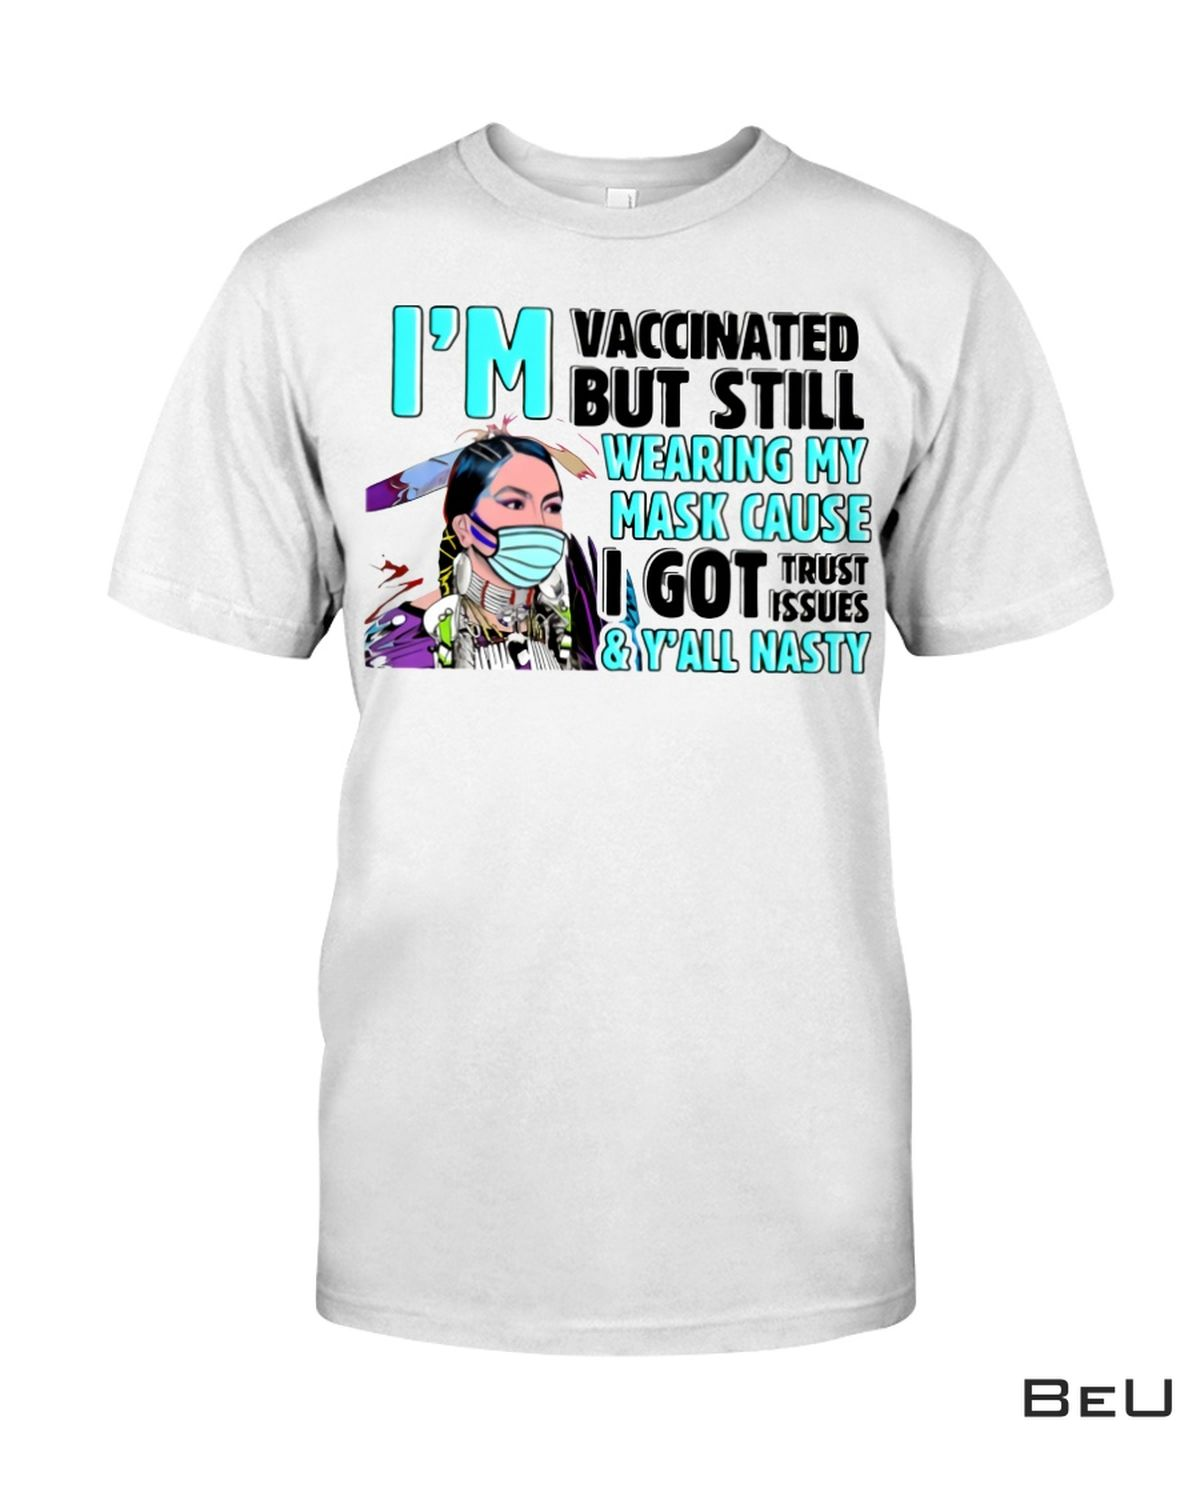 I'm Vaccinated But Still Wearing My Mask Native American Shirt